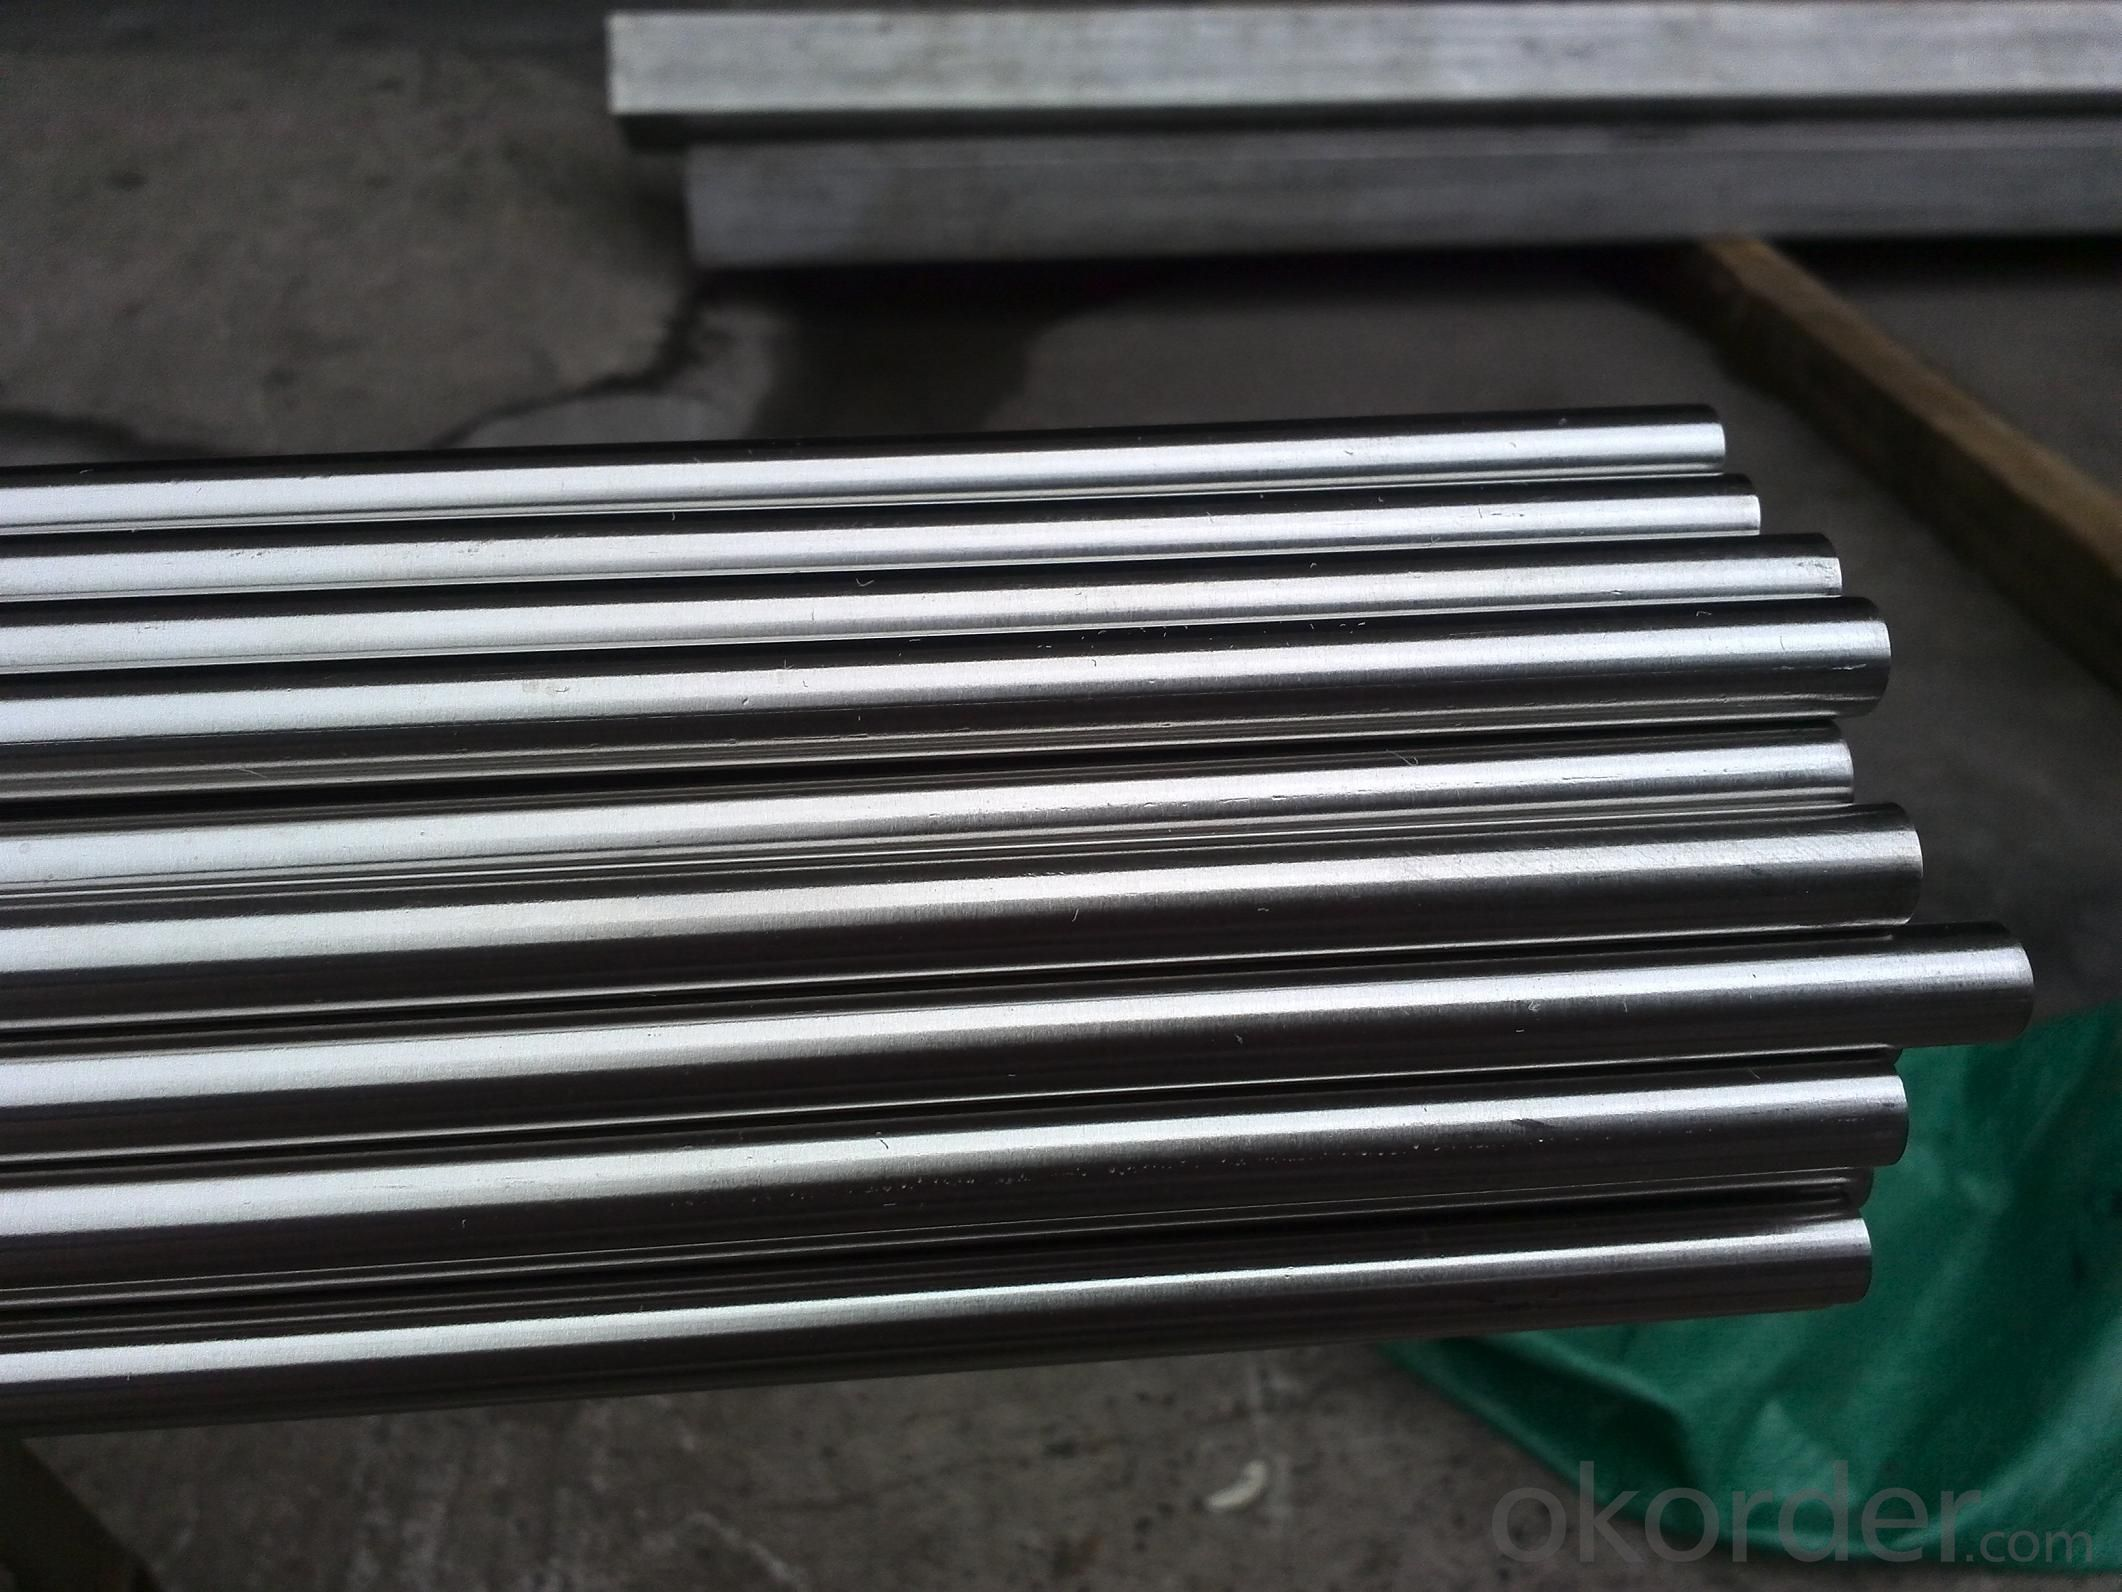 High selling quality bright stainless steel pipe 316L